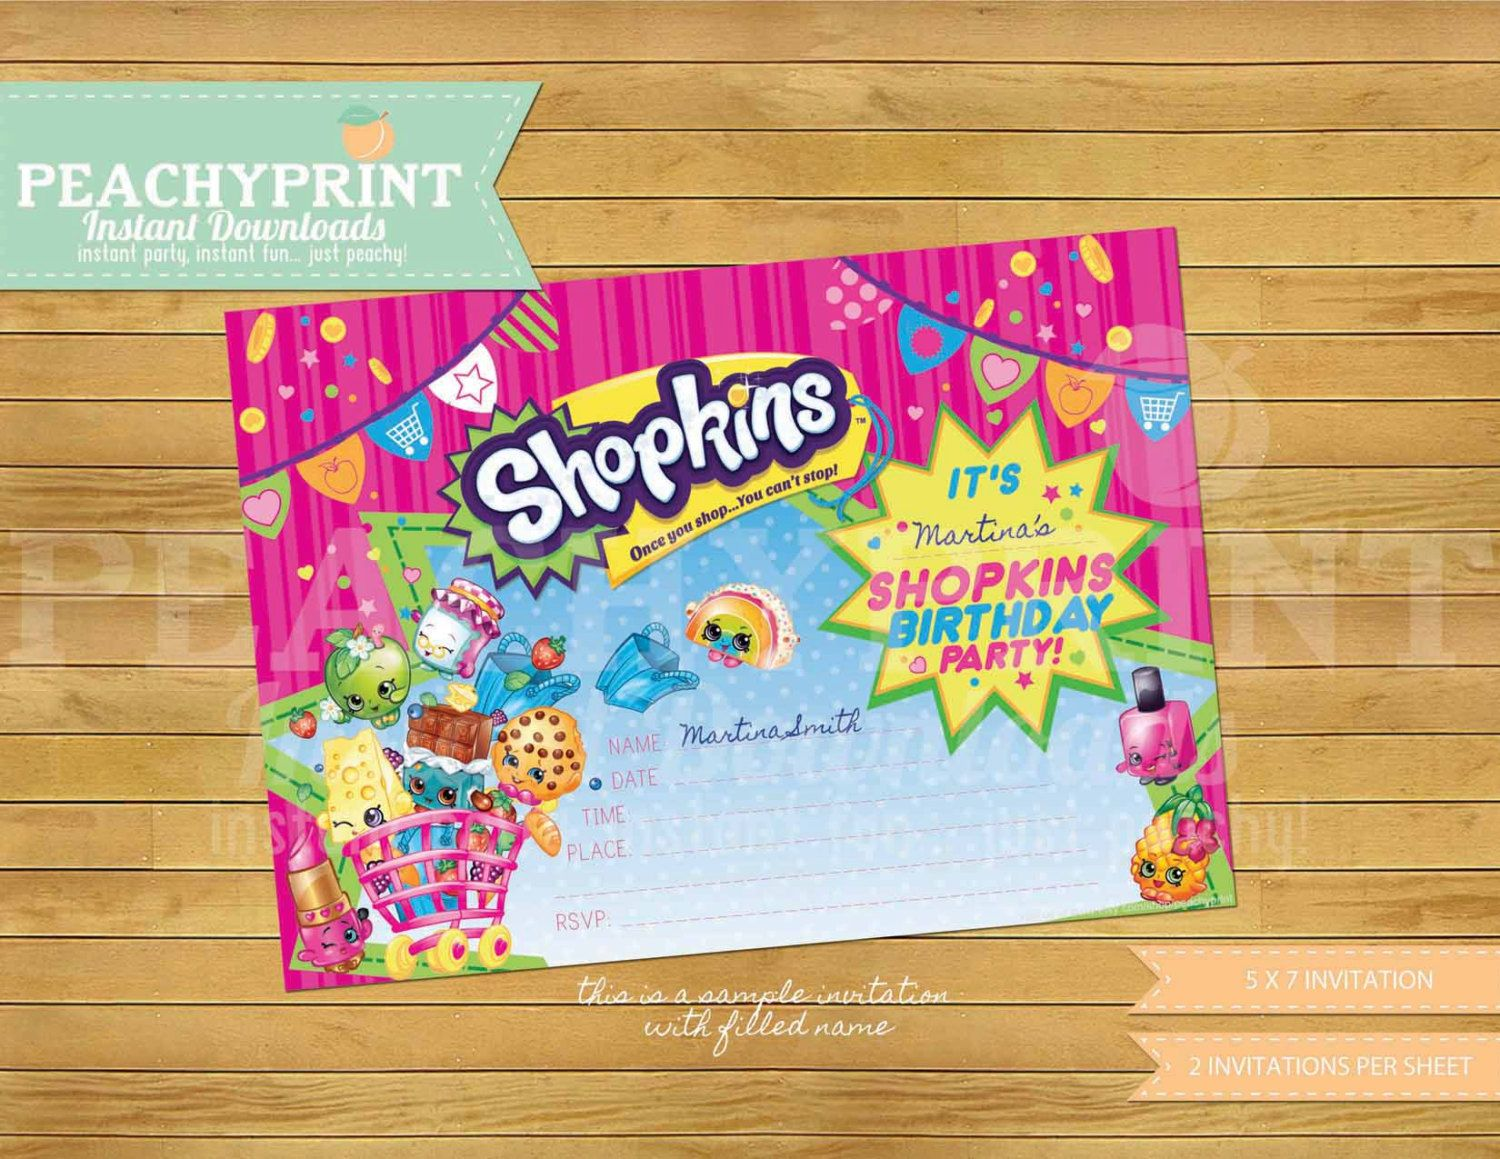 Shopkins Birthday Invitation Instant Download Shopkins And Birthdays - Birthday invitation images download